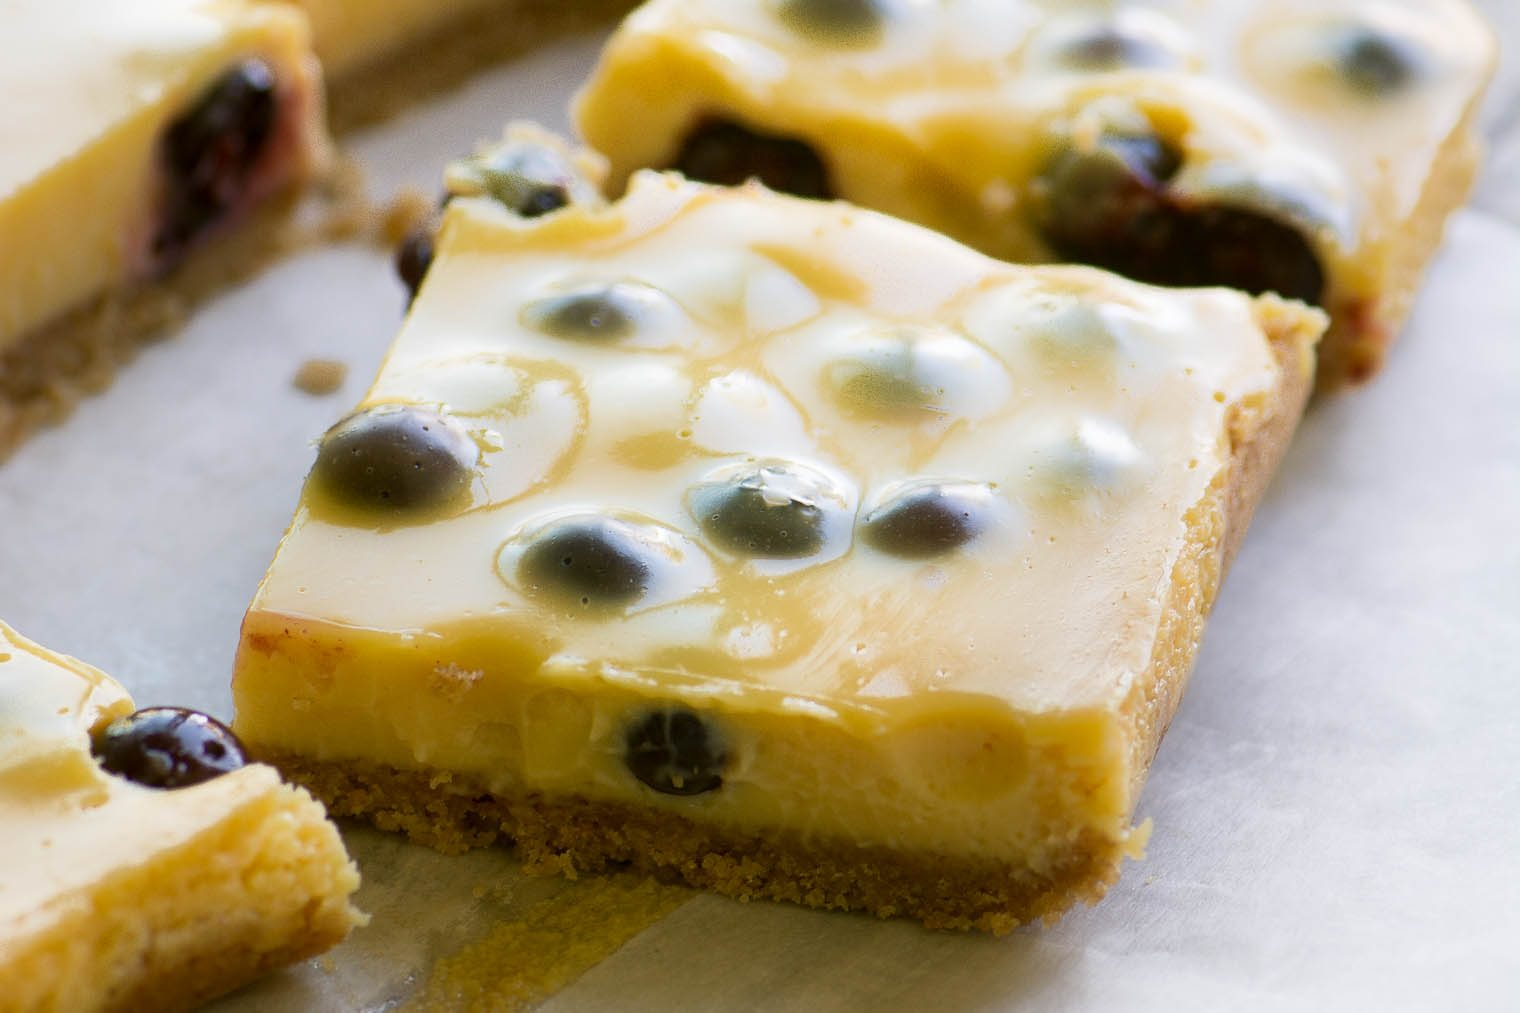 Blueberry Lemon Bars | The View from Great Island